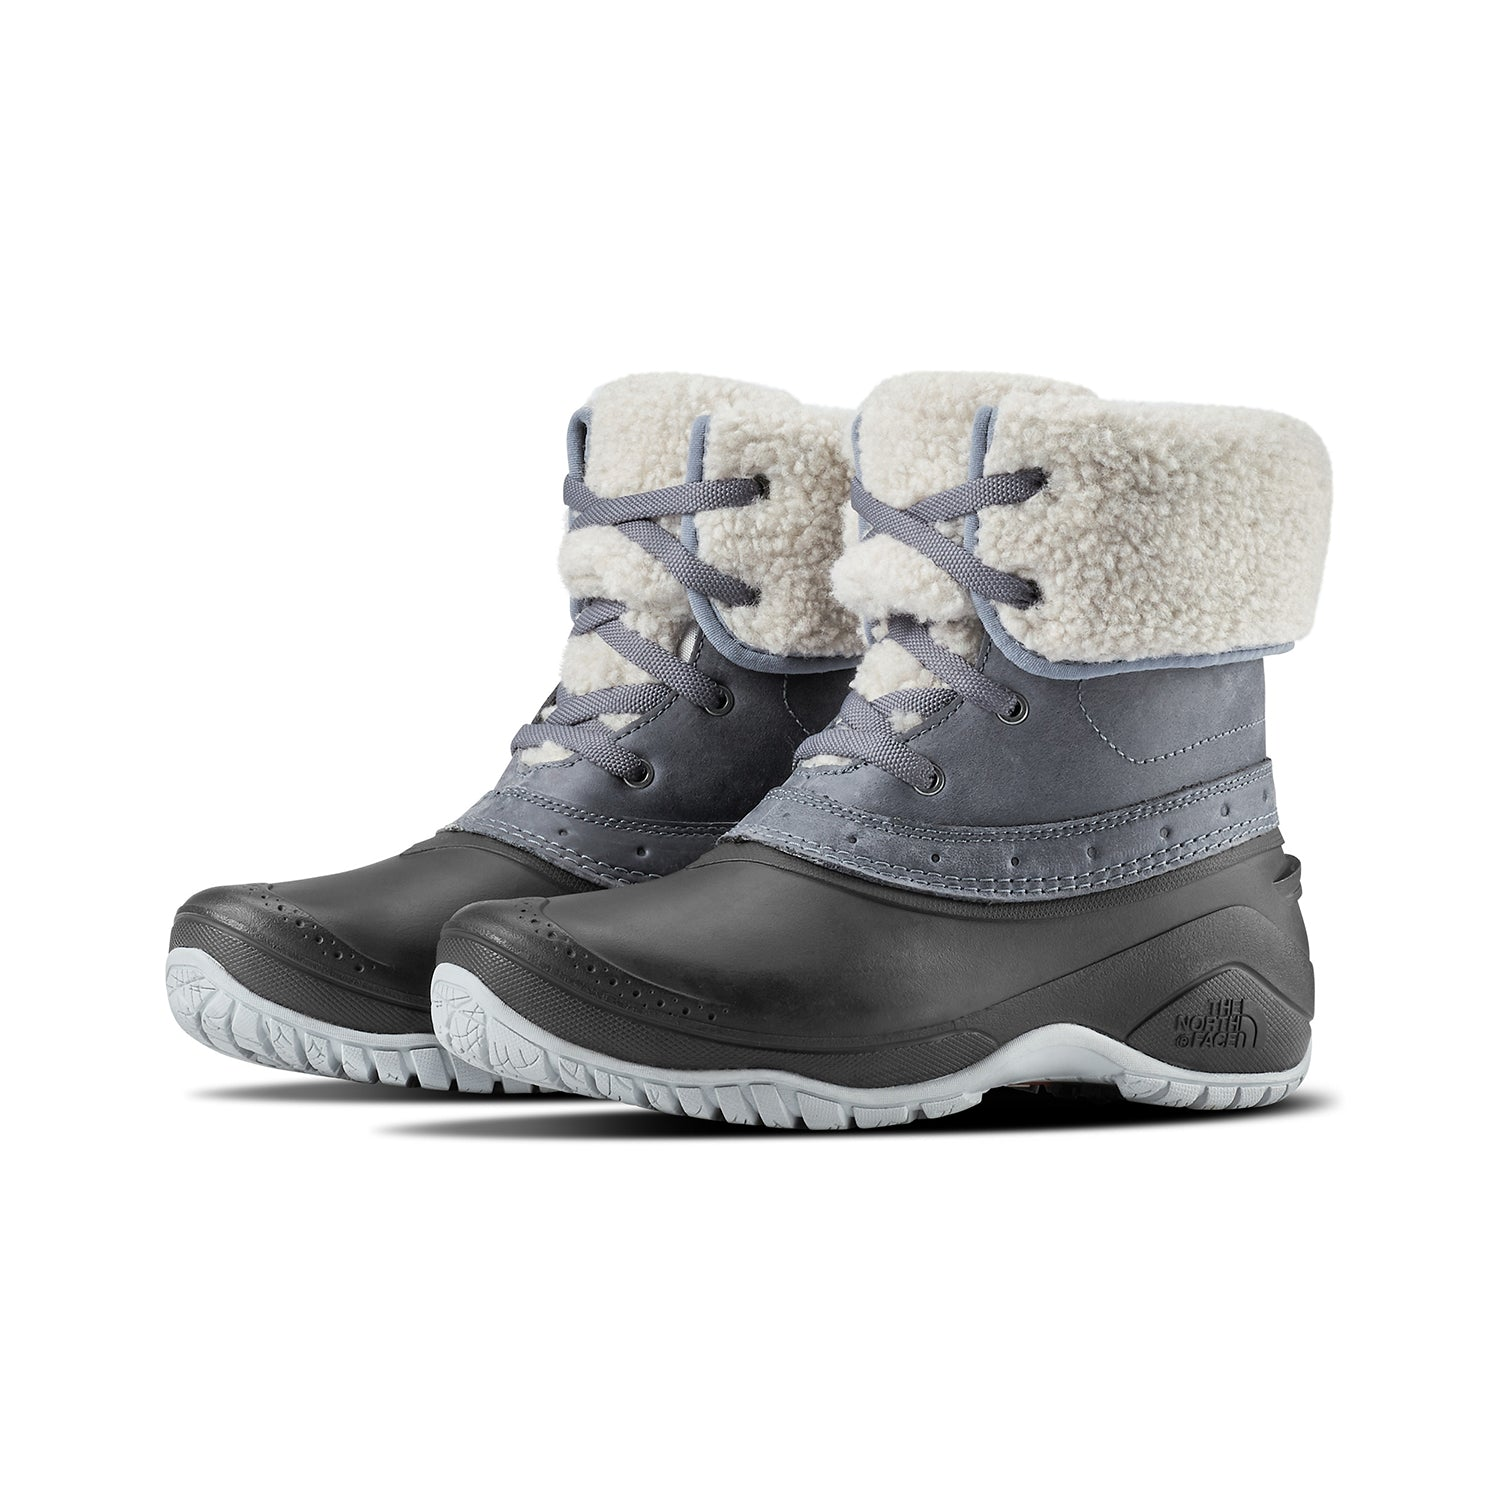 3a315c7f22d13 ... Women's Shellista Roll Down Boots - Grisaille Grey/Weathered Black ...